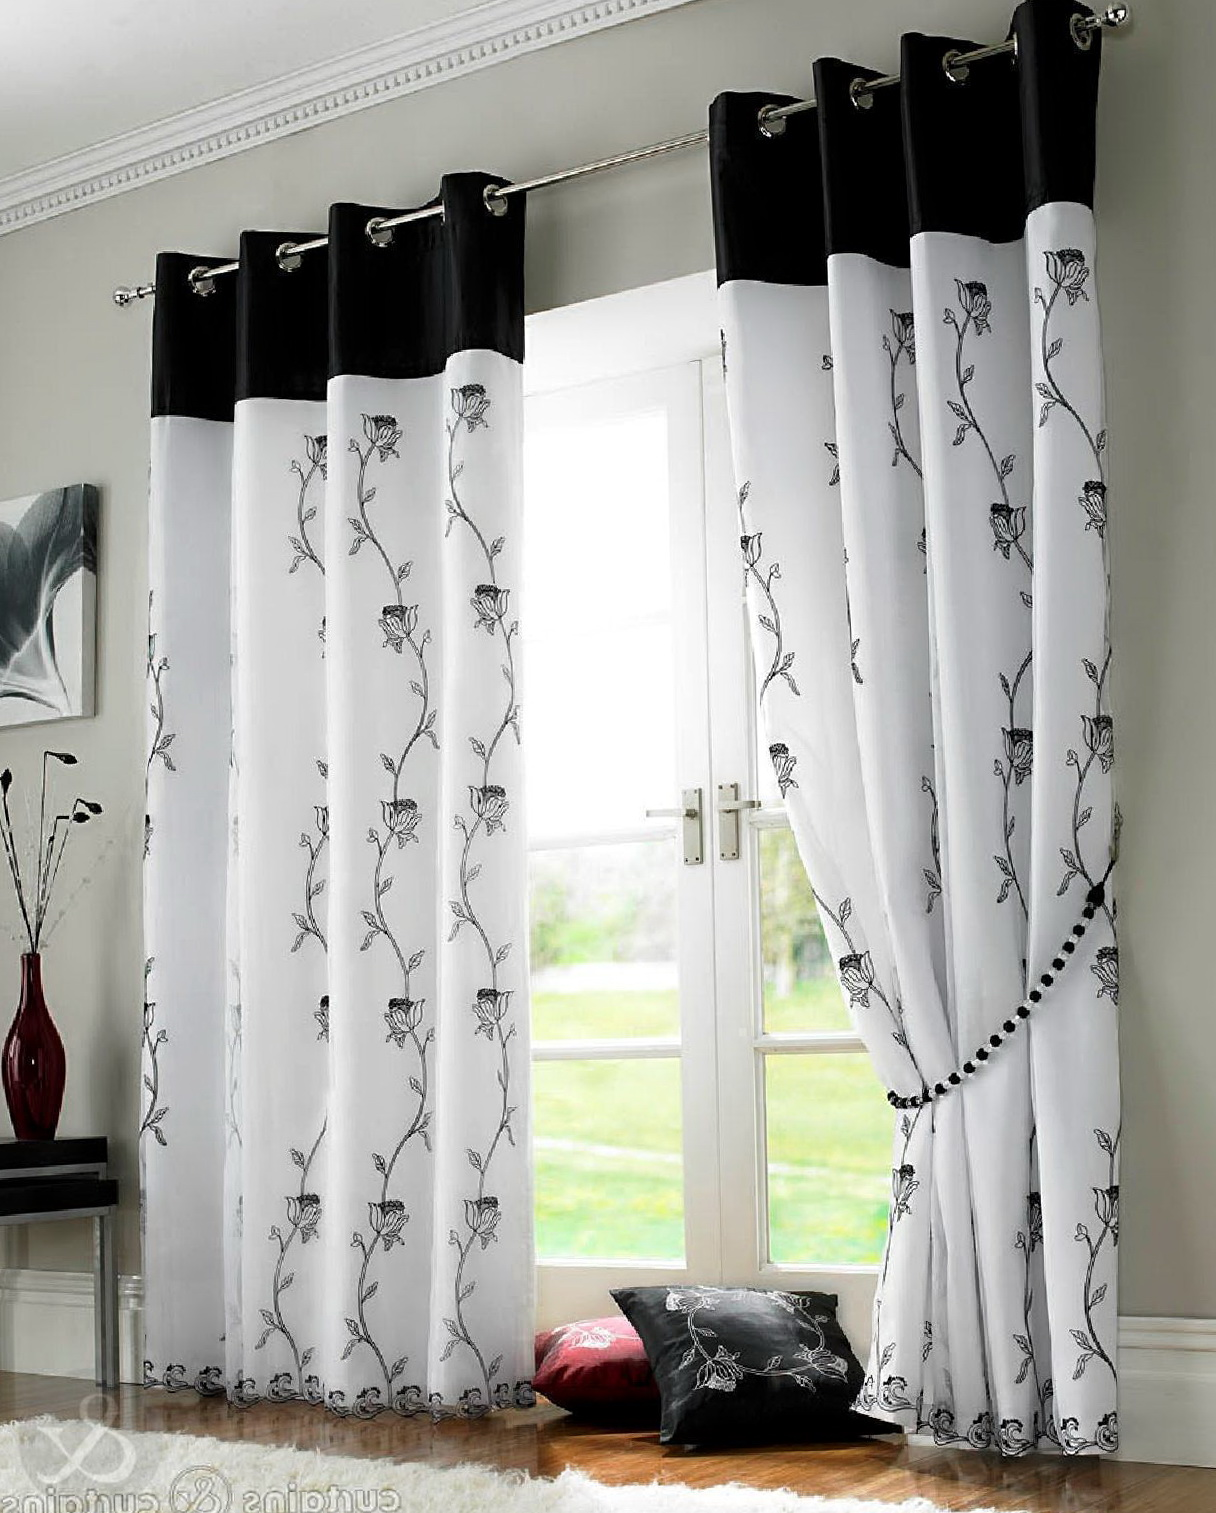 Black And White Curtains Design Home Ideas